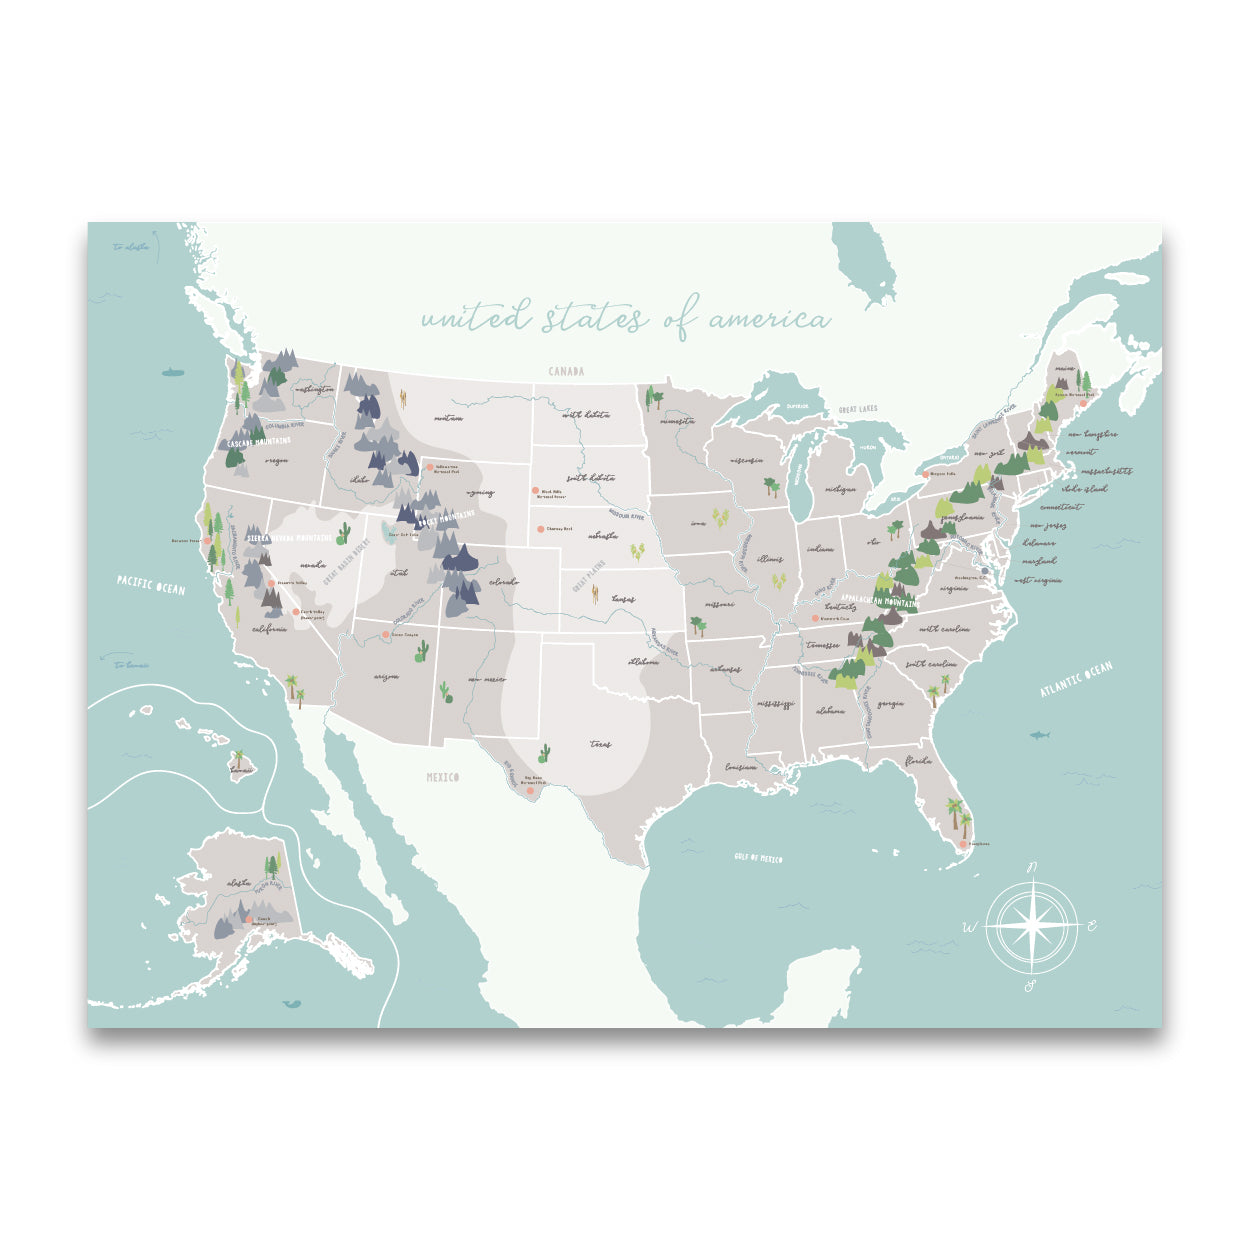 United States Map with Physical Features | Pretty Nerdy Press